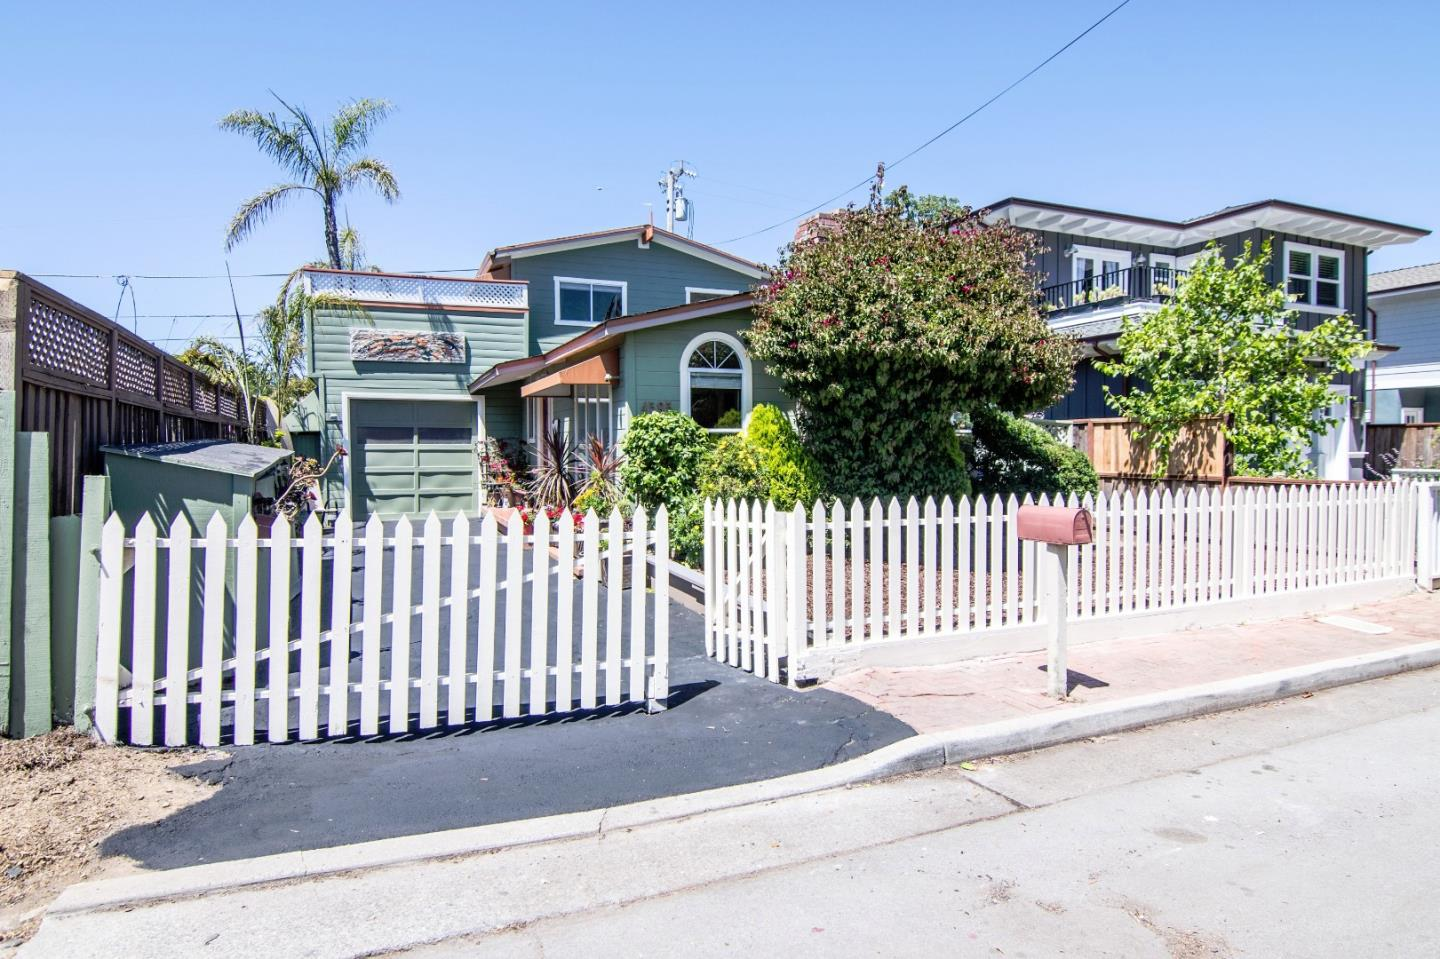 Single Family Home for Sale at 4595 Emerald Street 4595 Emerald Street Capitola, California 95010 United States